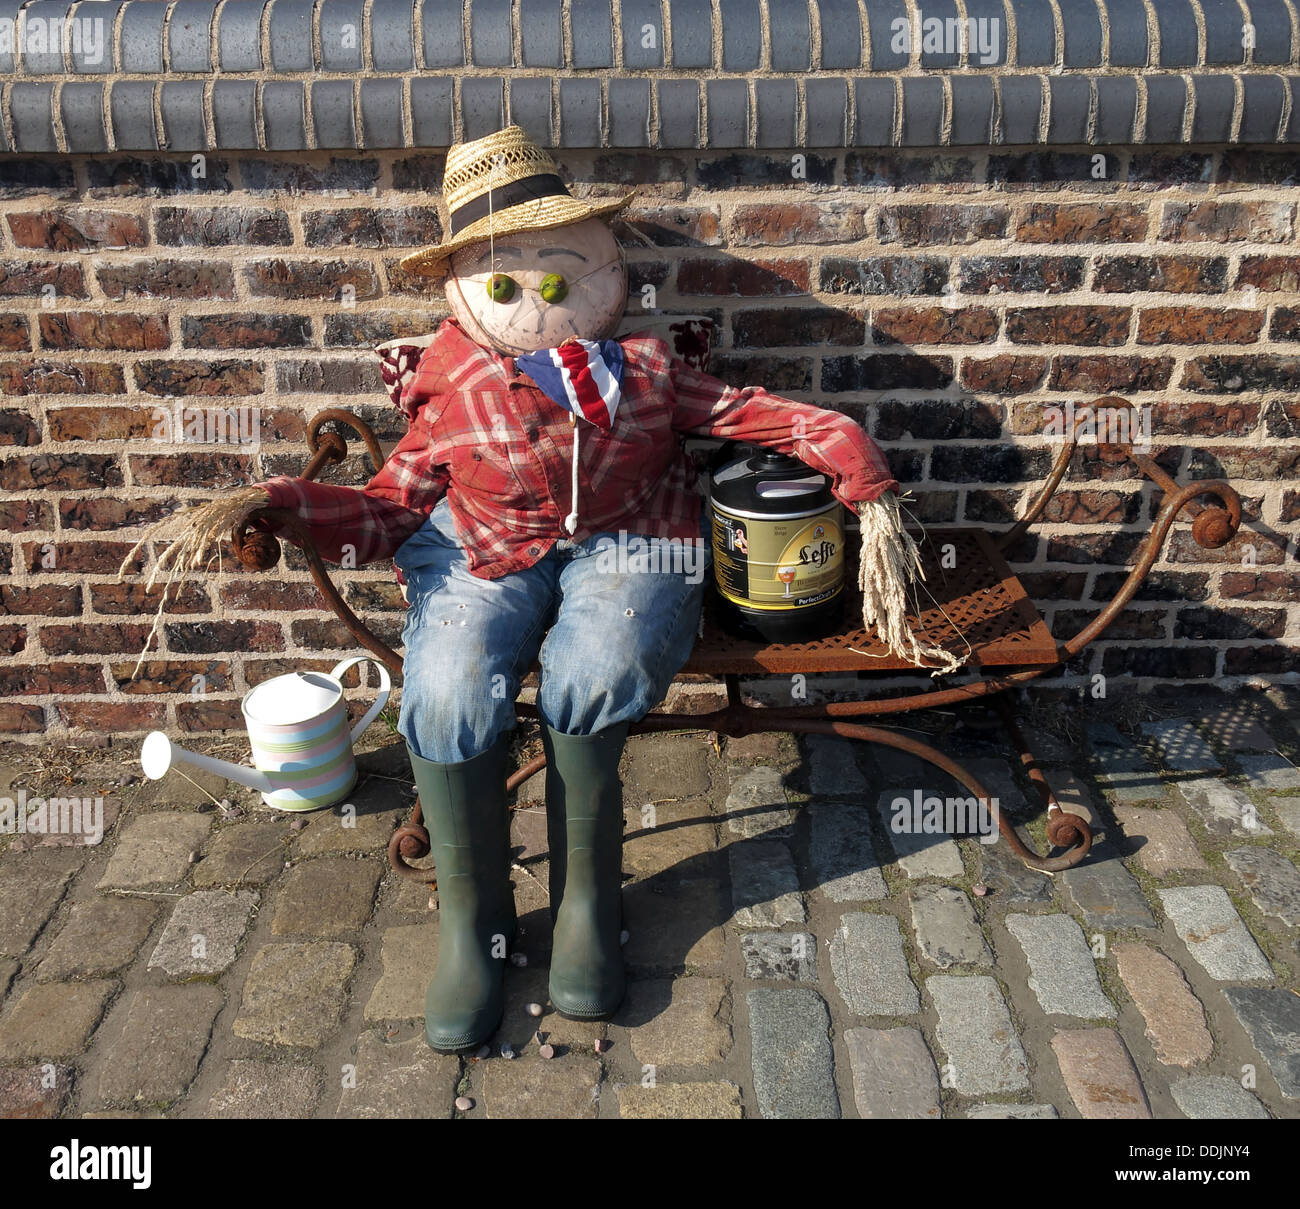 Summer Scarecrow on a bench, England, UK - Stock Image